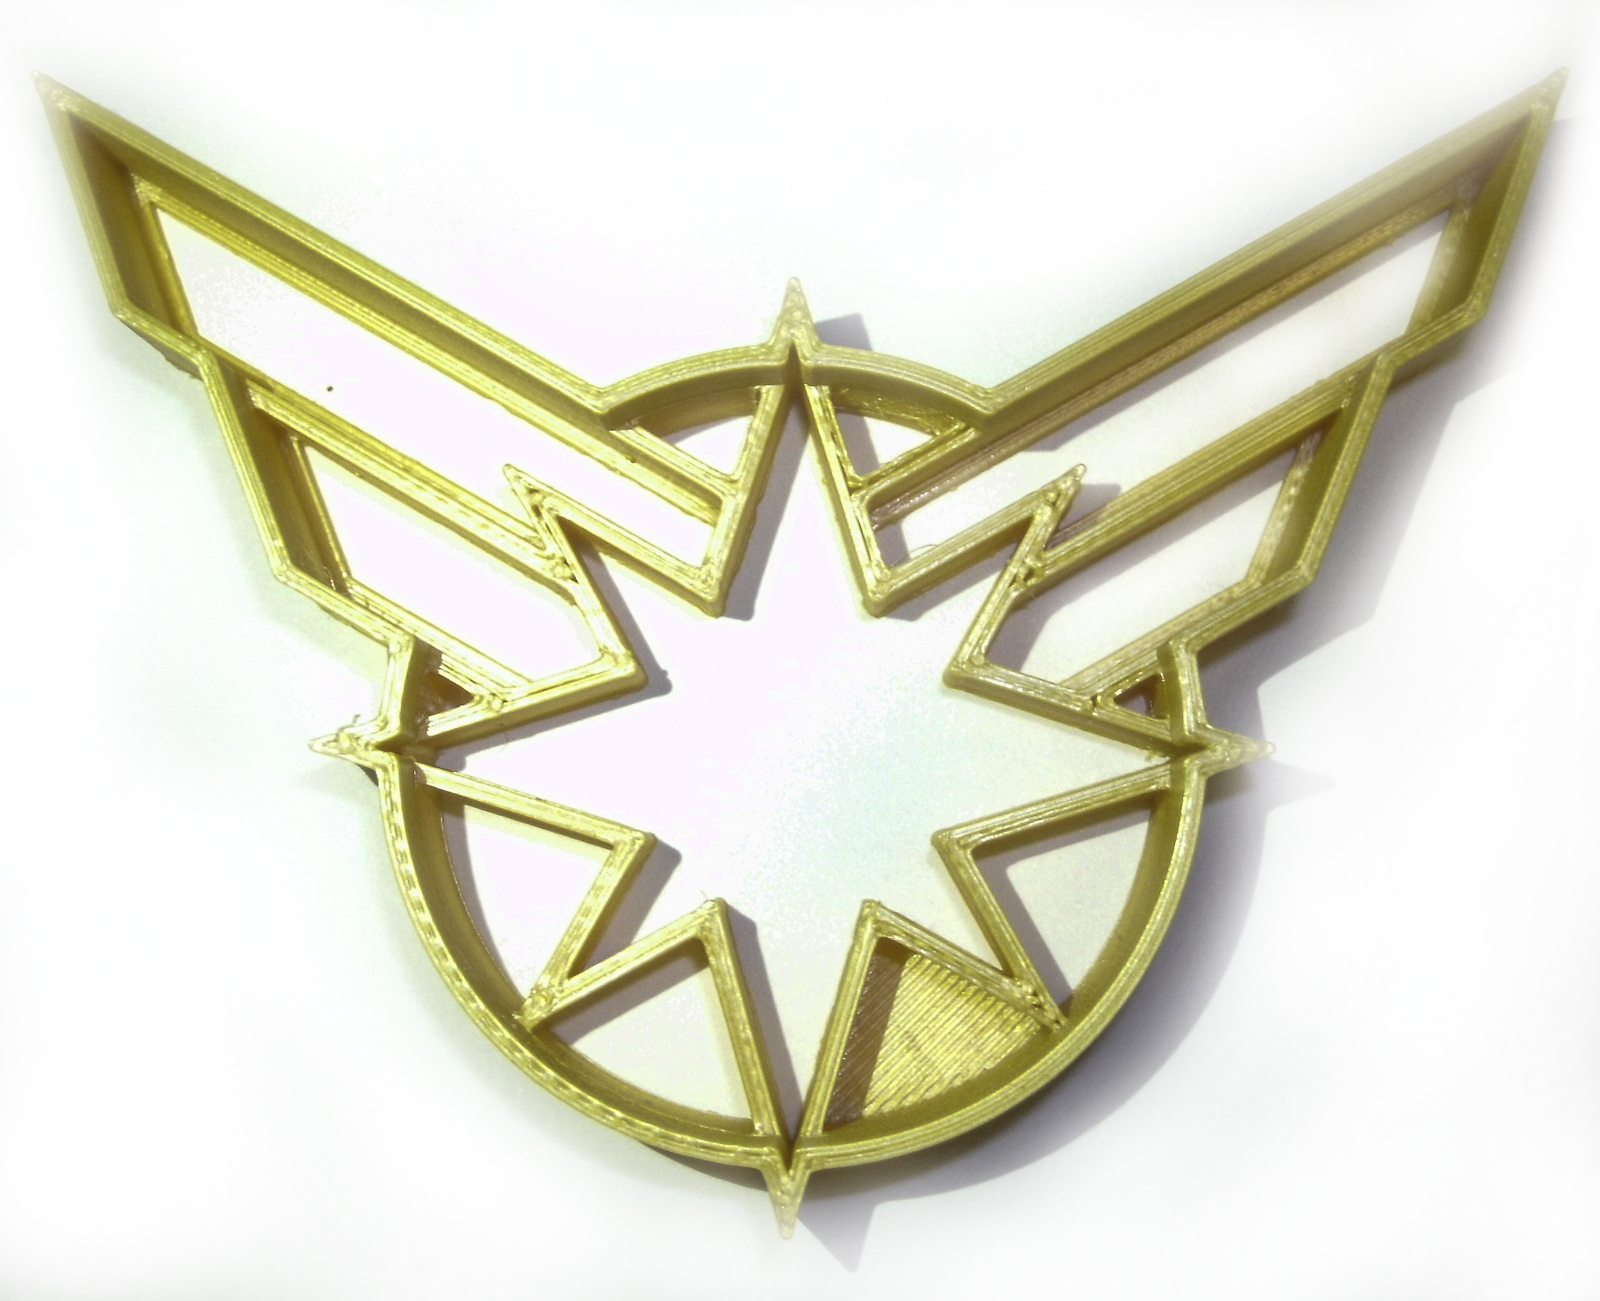 Captain Marvel Superheroes Logo Comic Movie Cookie Cutter 3D Printed USA PR846 - $2.99